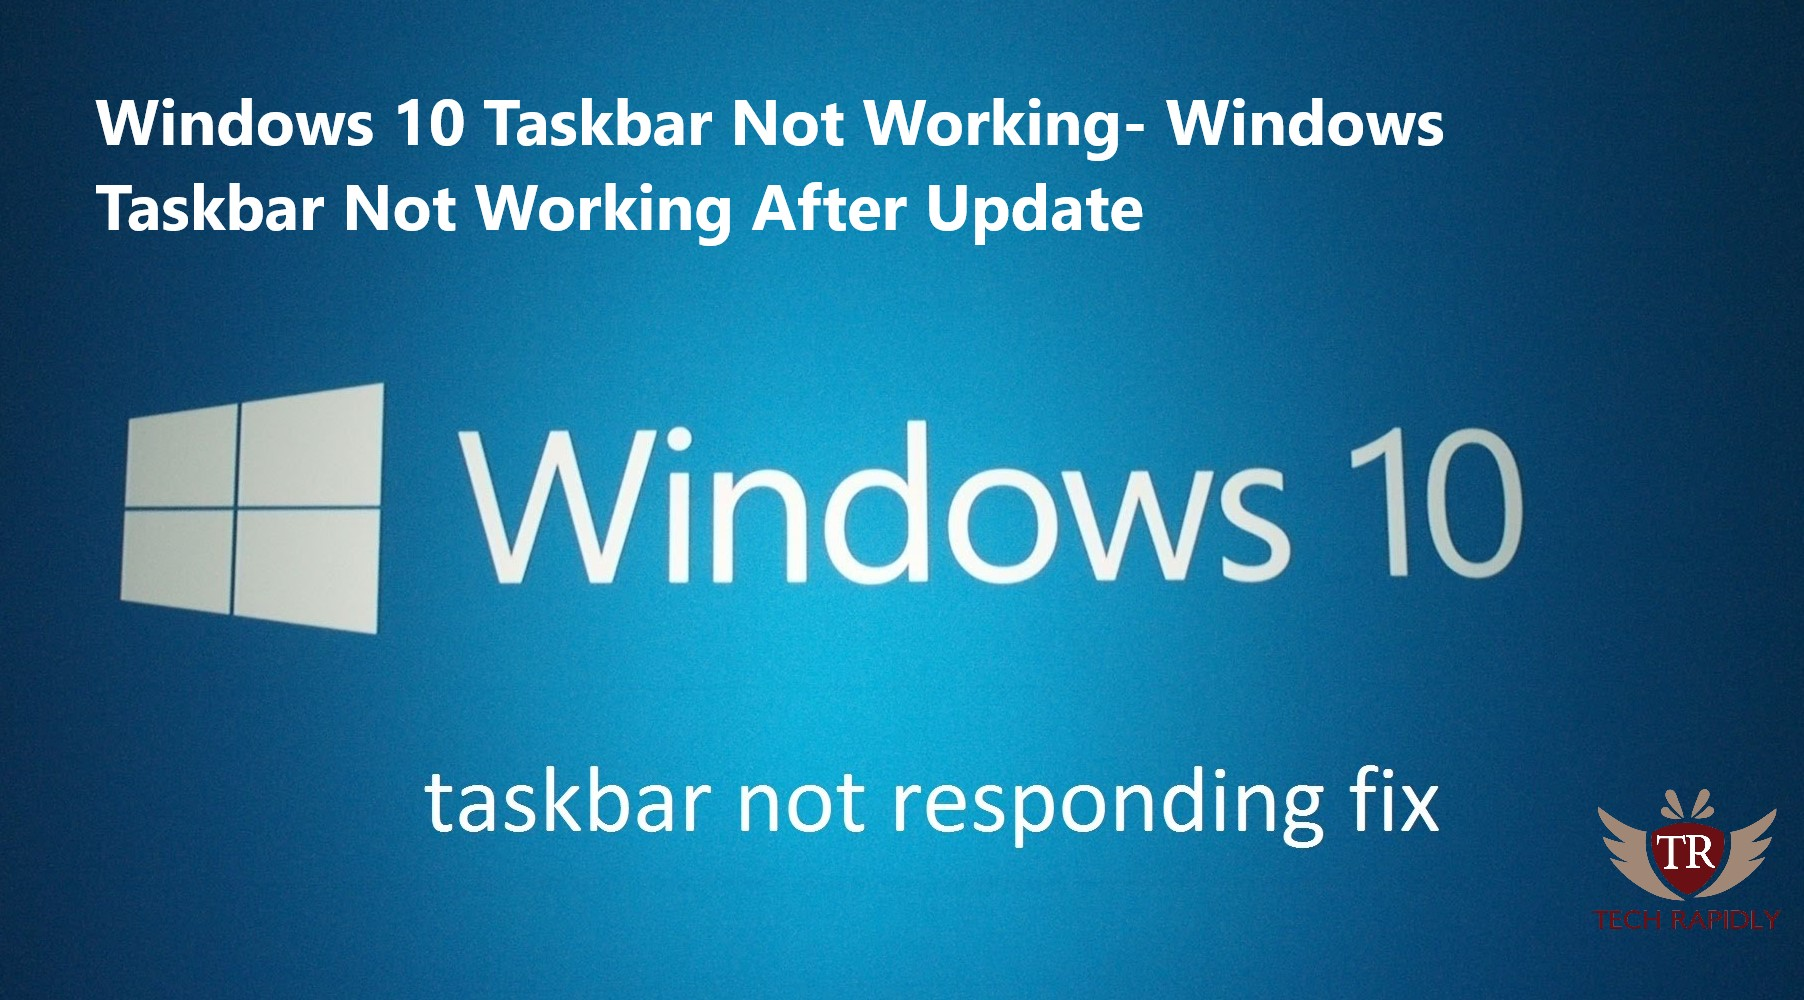 Windows 10 Taskbar Not Working 2019 - Windows 10 Taskbar Not